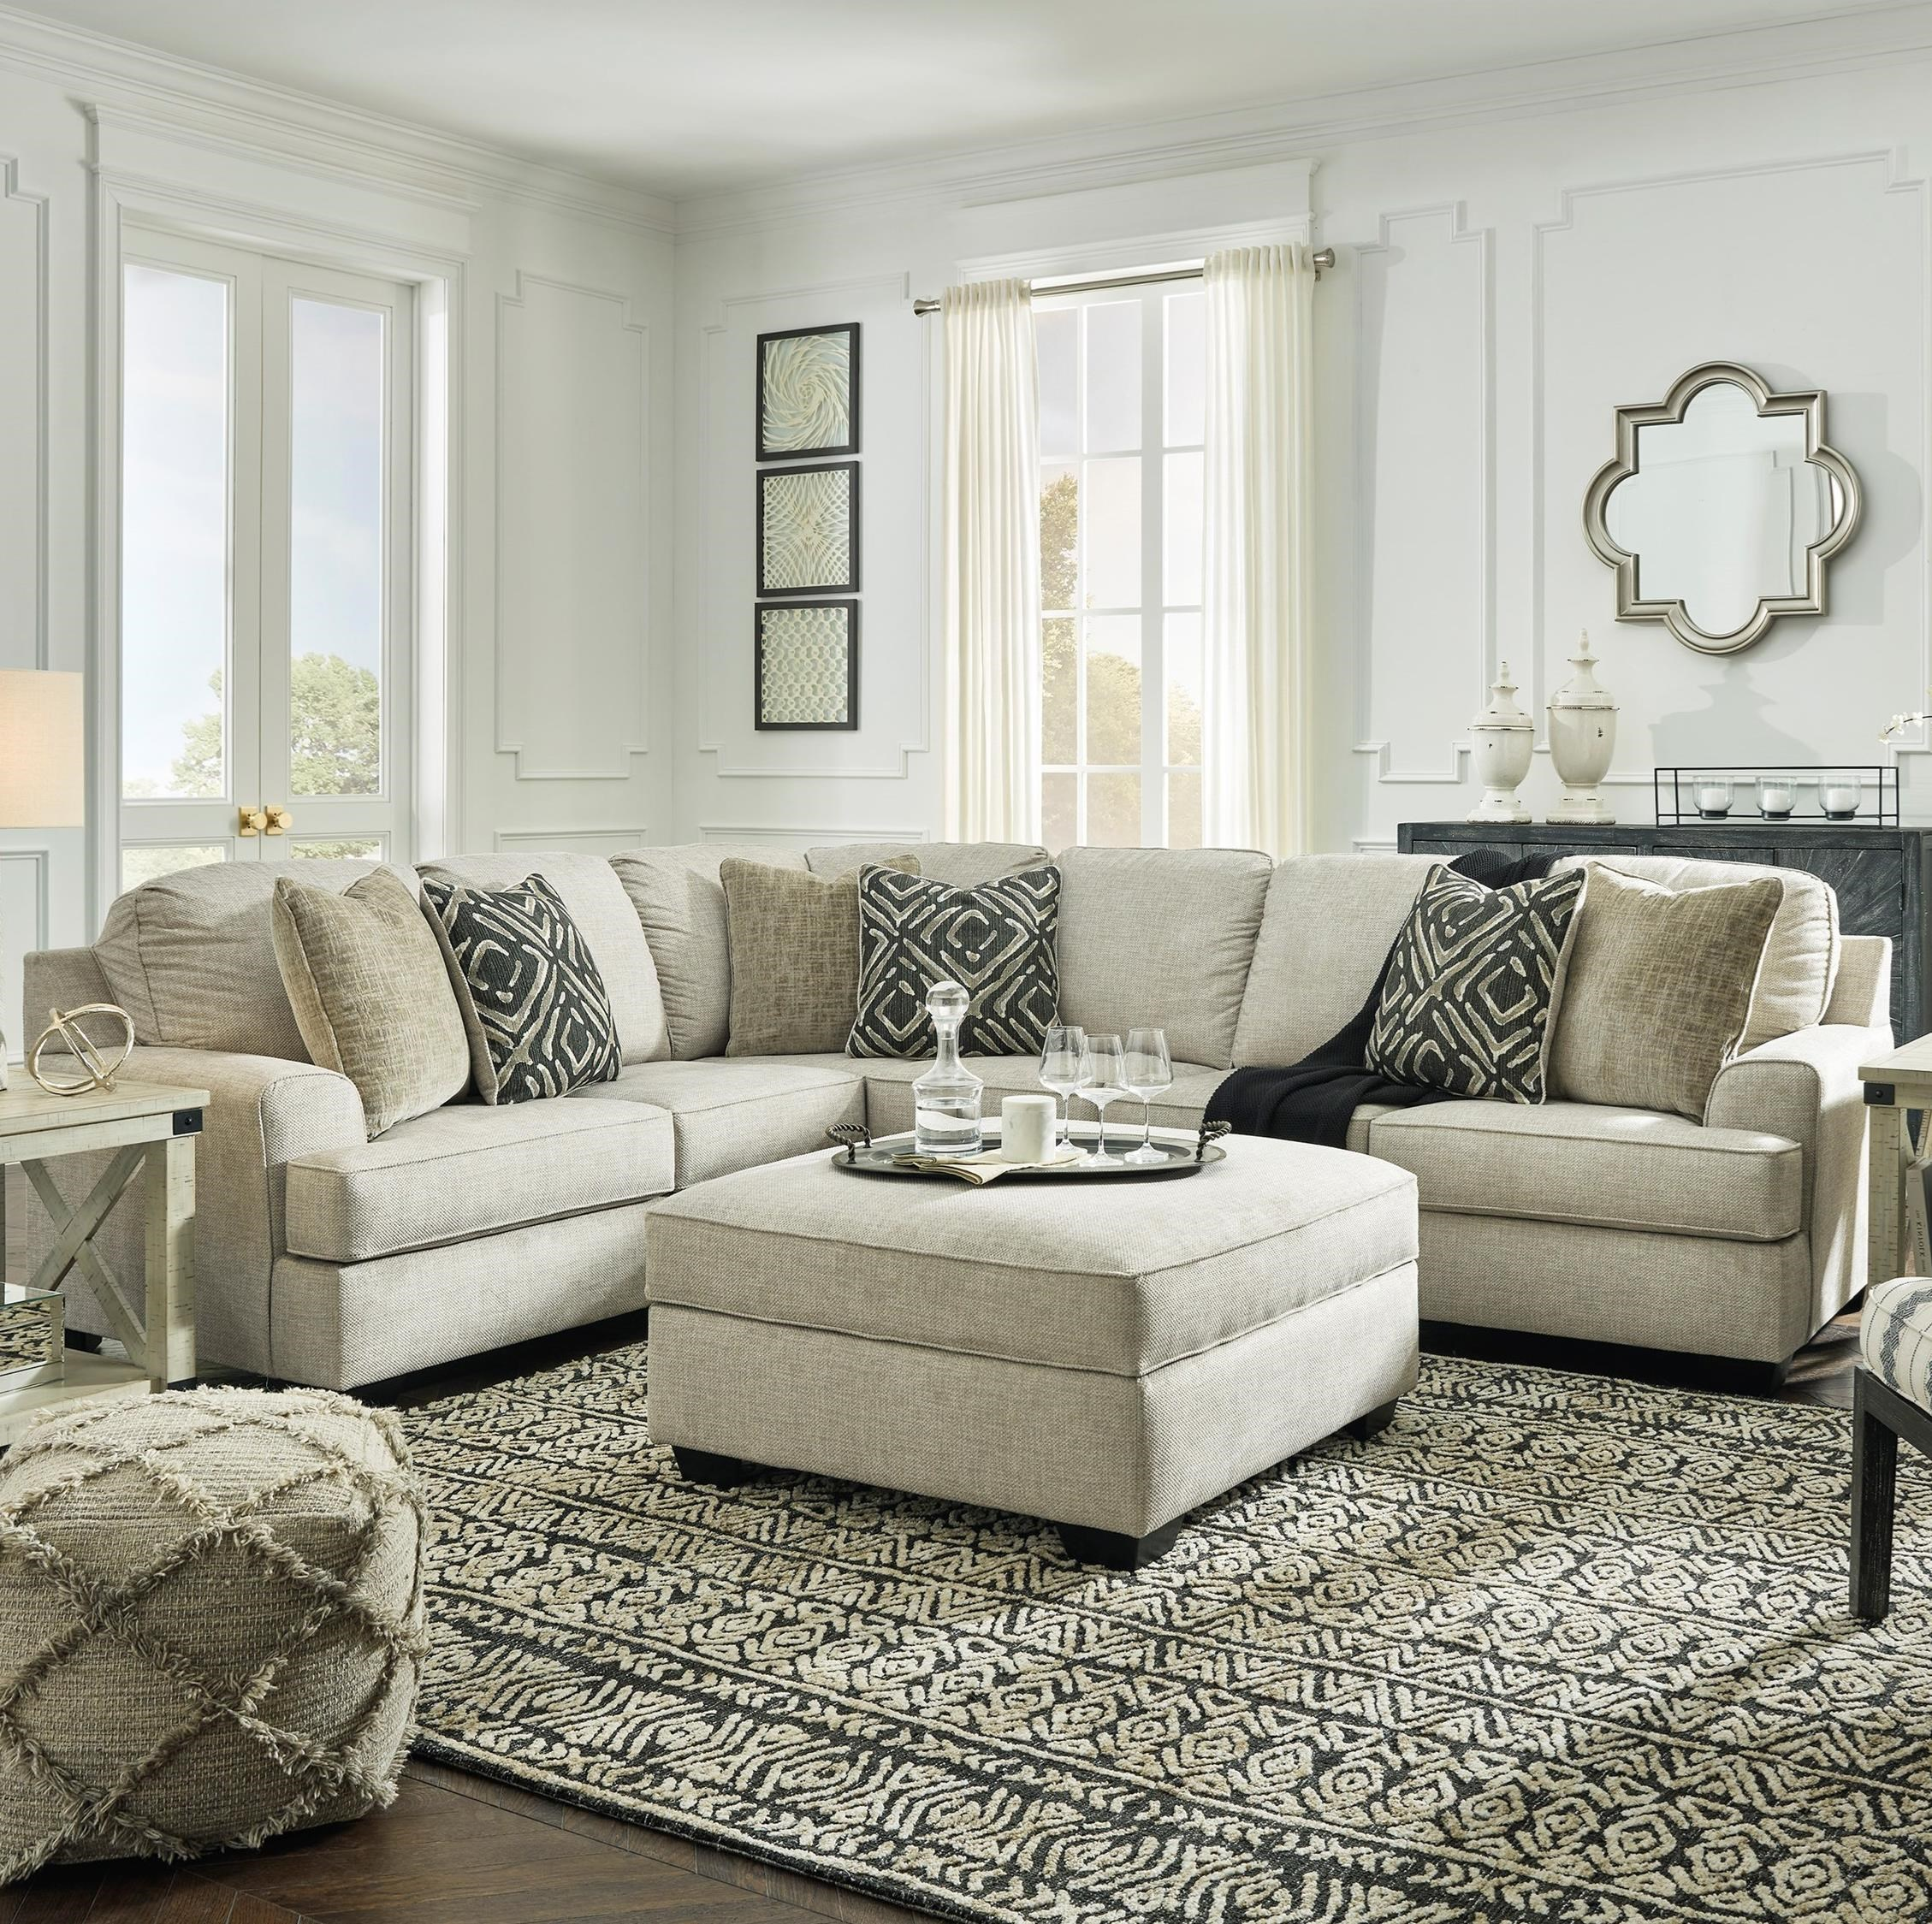 Wellhaven Living Room Group by Benchcraft at Northeast Factory Direct